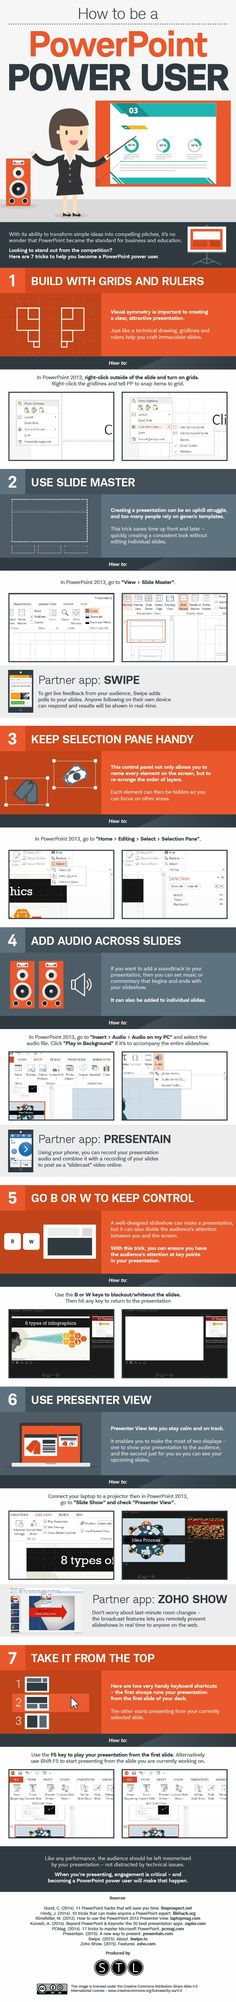 Usdgus  Nice Presentation Tips And Power Points On Pinterest With Lovable How To Be A Powerpoint Power User Infographic  Visualistan With Delectable Microsoft Powerpoint  Features Also How To Do Powerpoint Animation In Addition Microsoft Powerpoint Downloads And Backgrounds For Powerpoint  As Well As Powerpoint To Apple Tv Additionally Powerpoint Presentation Templates Free Download Business From Pinterestcom With Usdgus  Lovable Presentation Tips And Power Points On Pinterest With Delectable How To Be A Powerpoint Power User Infographic  Visualistan And Nice Microsoft Powerpoint  Features Also How To Do Powerpoint Animation In Addition Microsoft Powerpoint Downloads From Pinterestcom